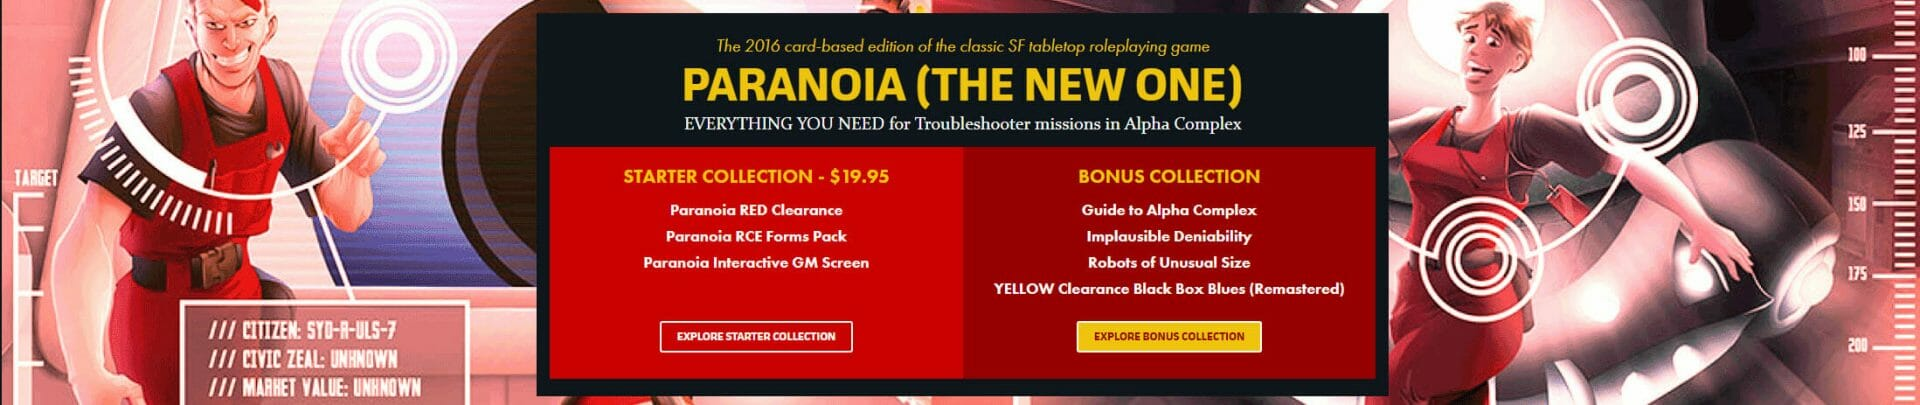 Paranoia RED Clearance Bundle